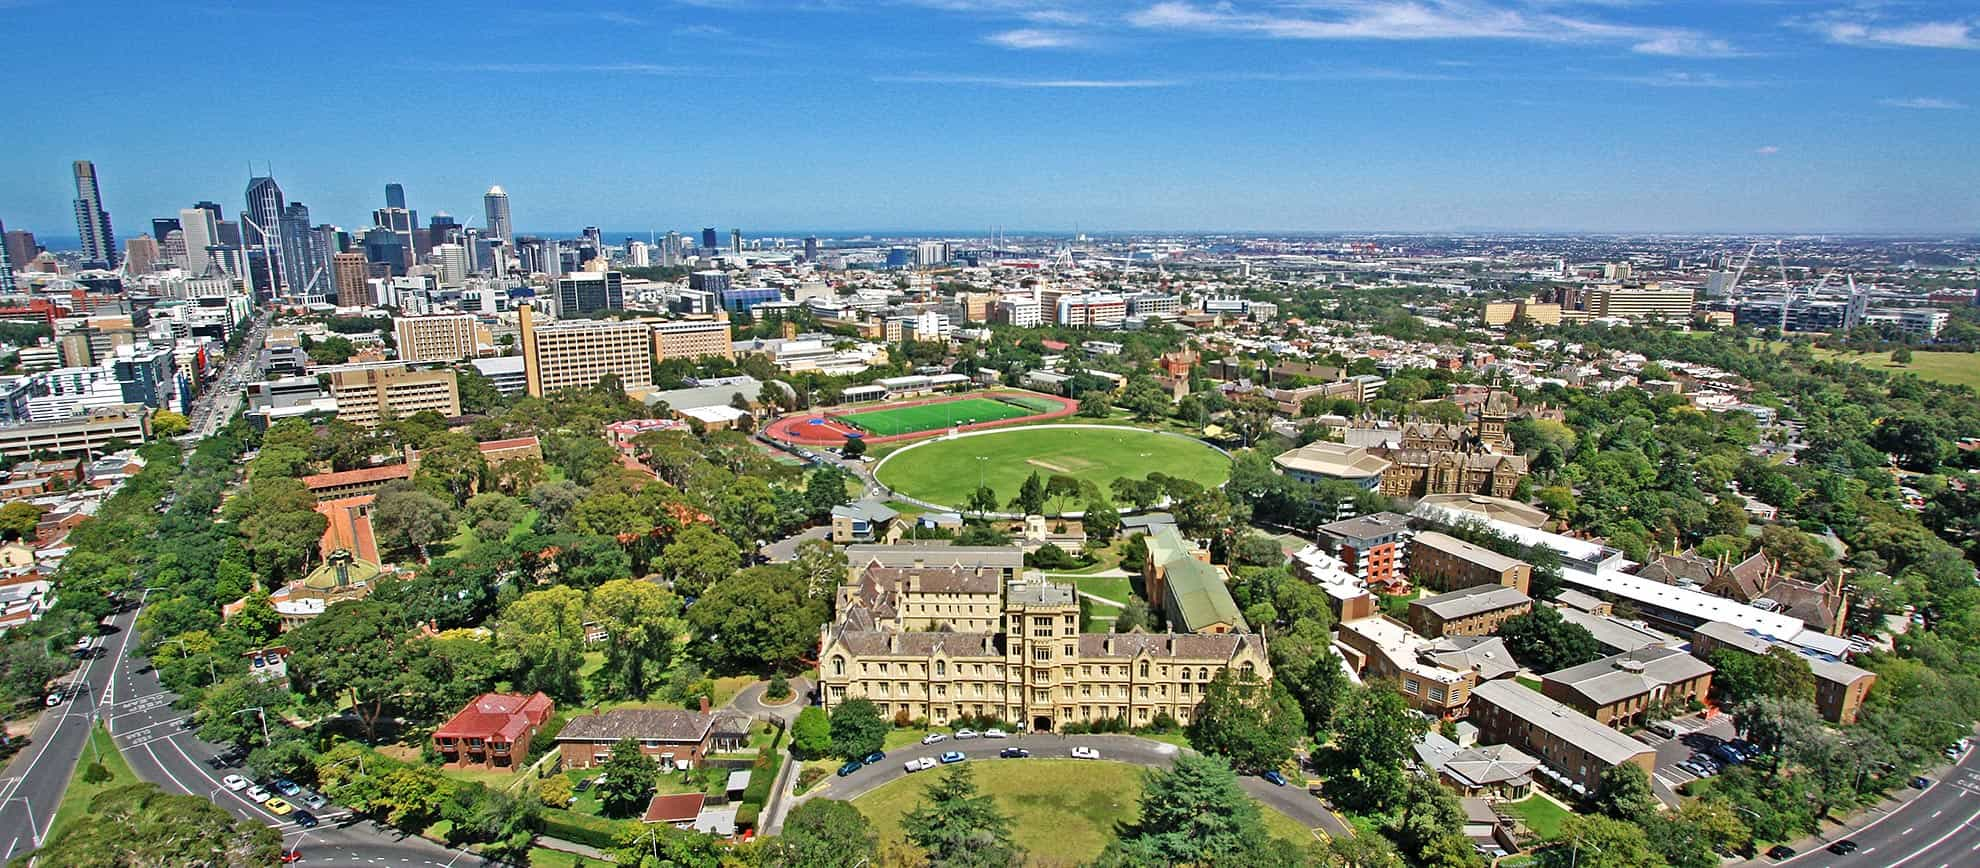 Aerial shot of the University of Melbourne campus - Queen's College in the foreground, and Melbourne CBD in the distance.